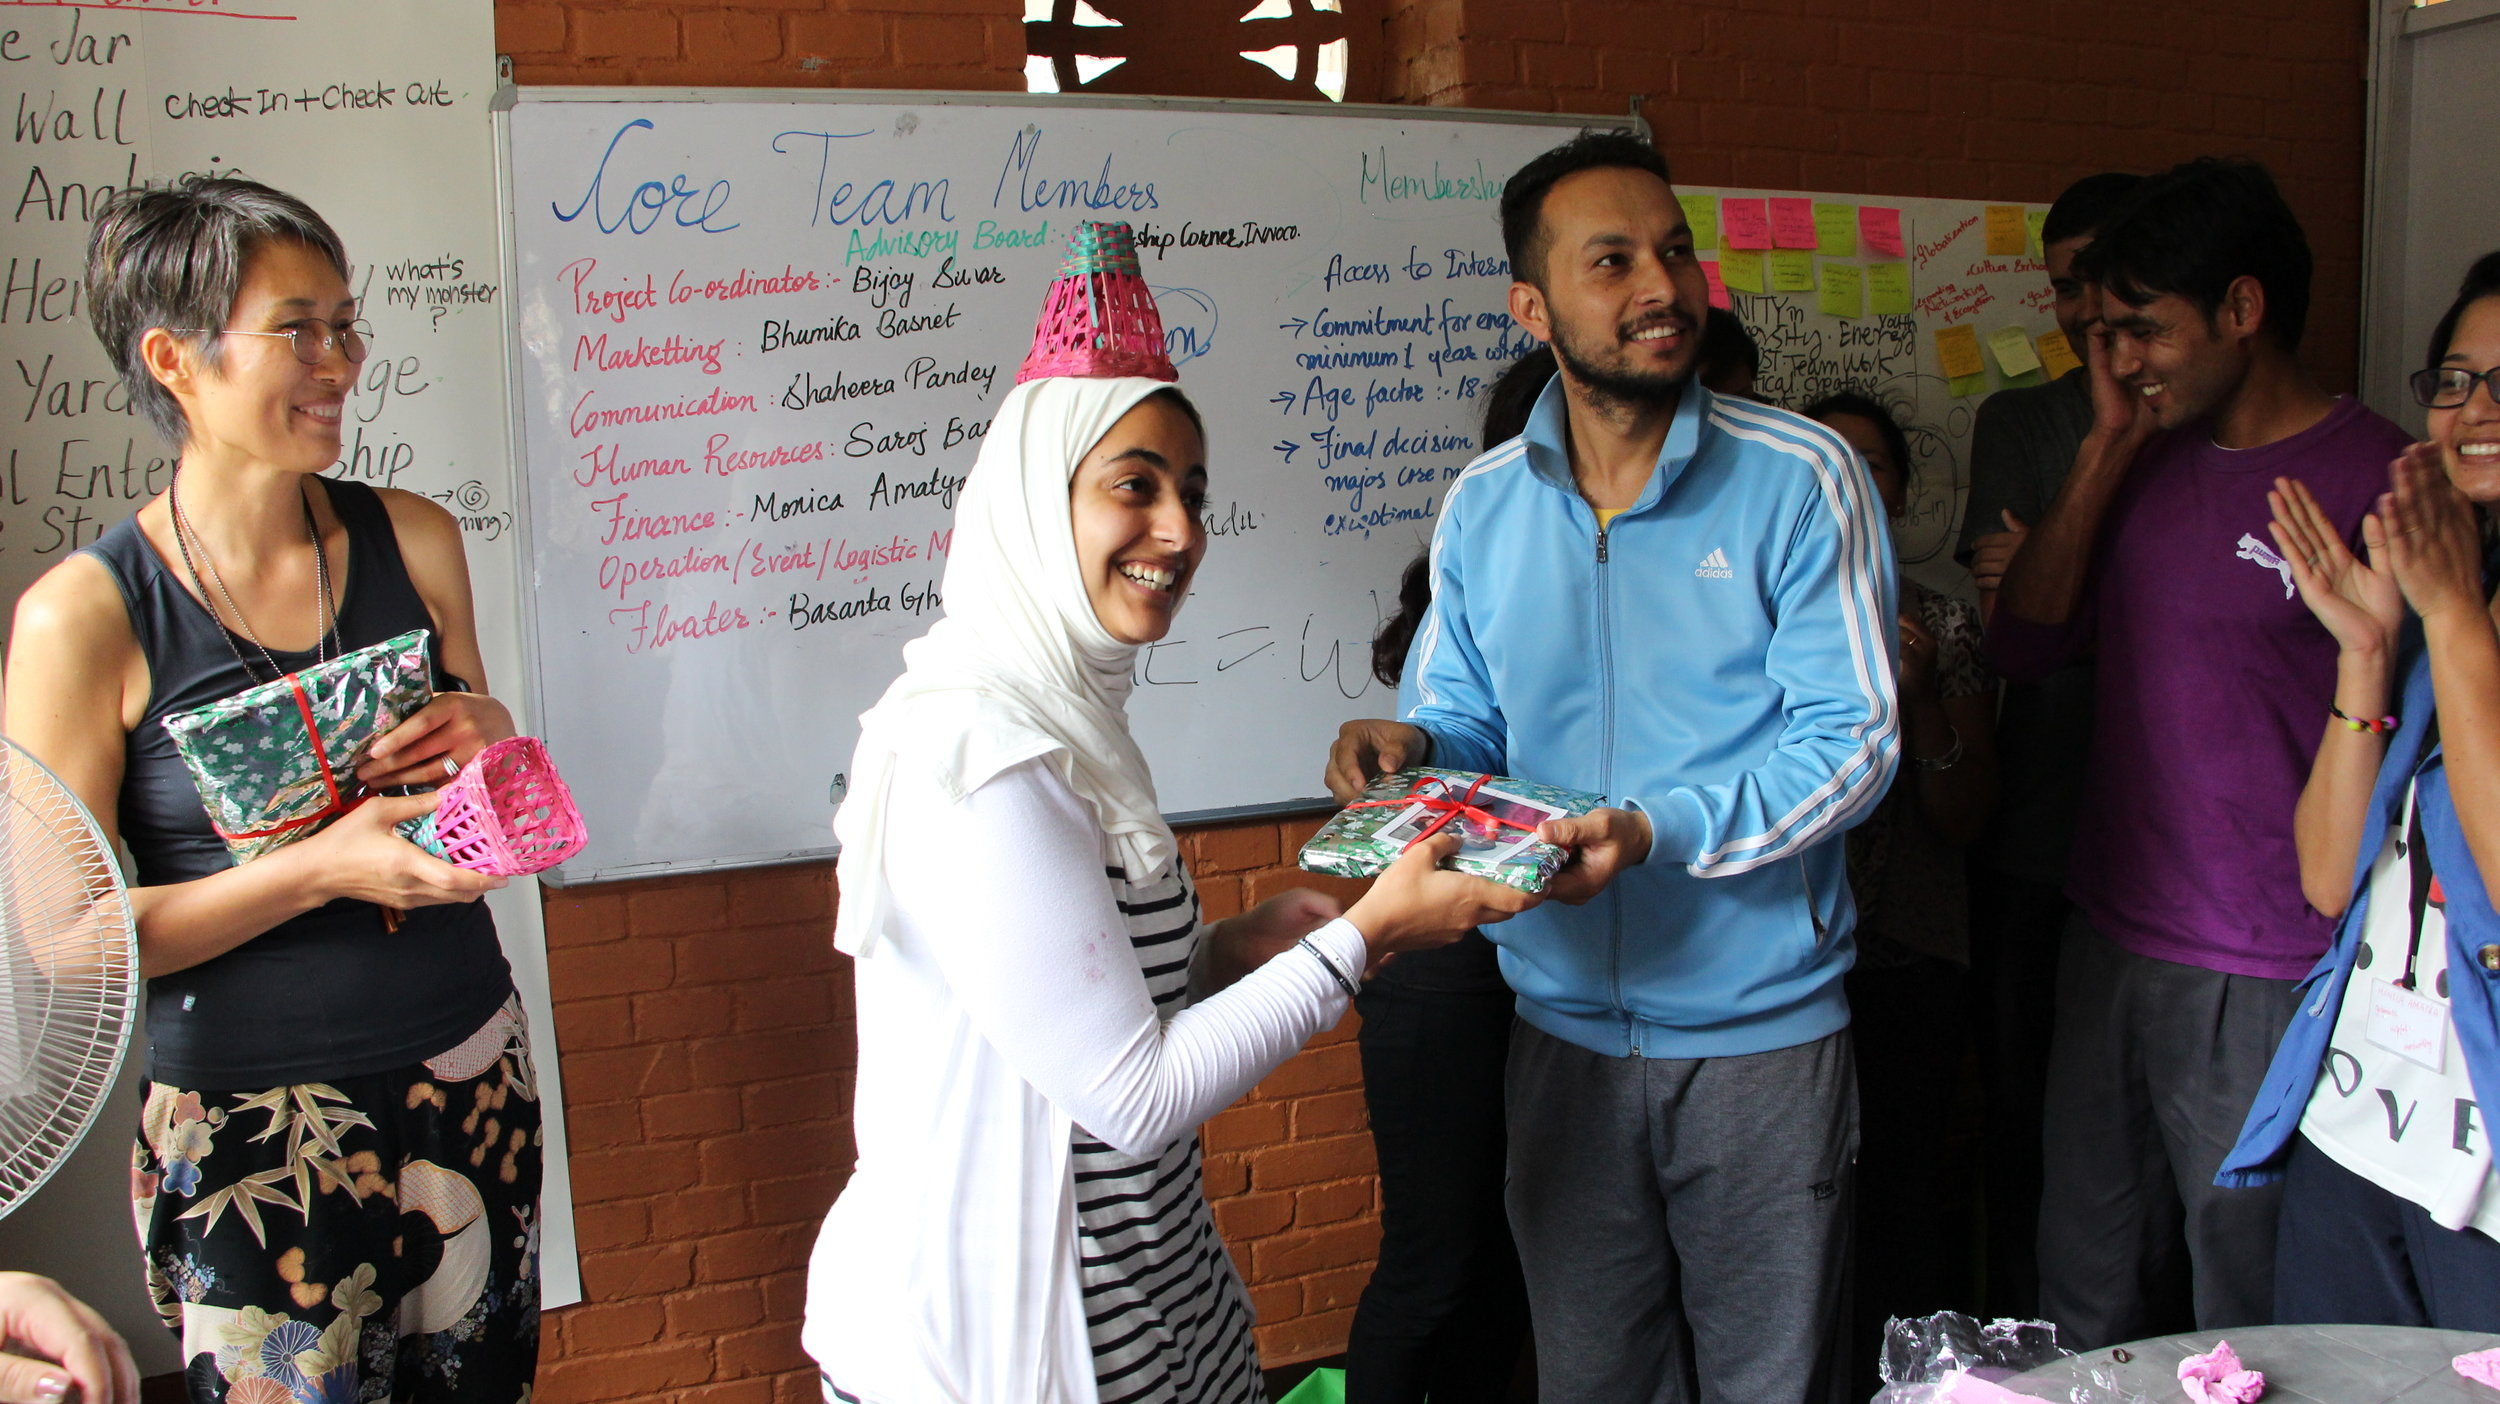 Receiving gifts from the youth participants